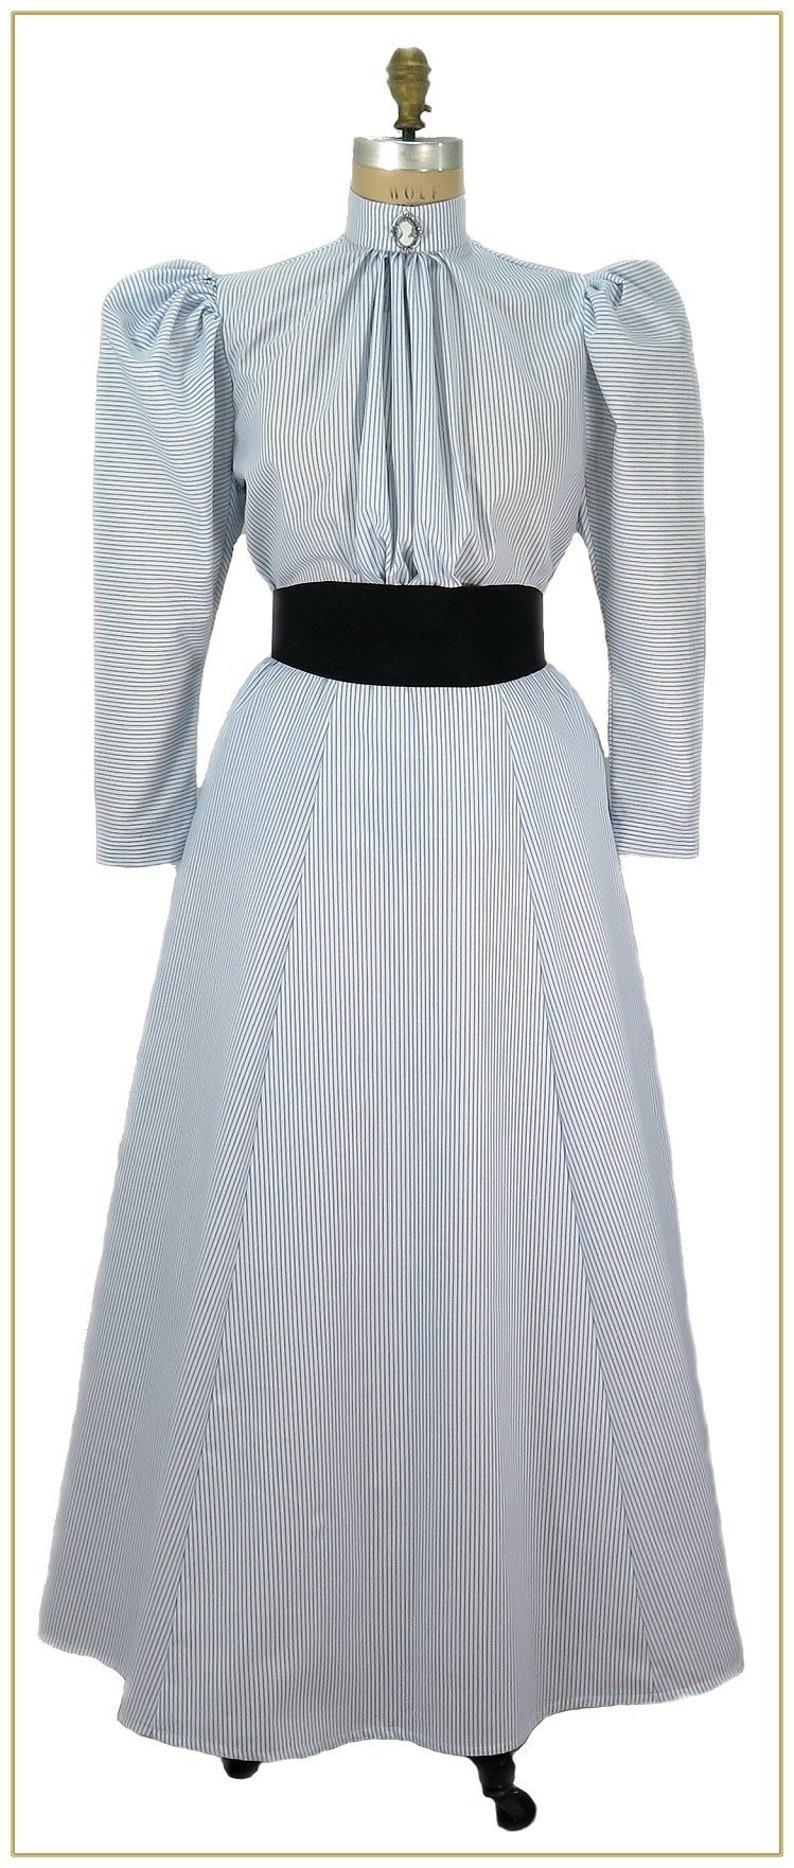 Victorian Skirts | Bustle, Walking, Edwardian Skirts 1895-1905 Striped Maid Skirt  $59.00 AT vintagedancer.com